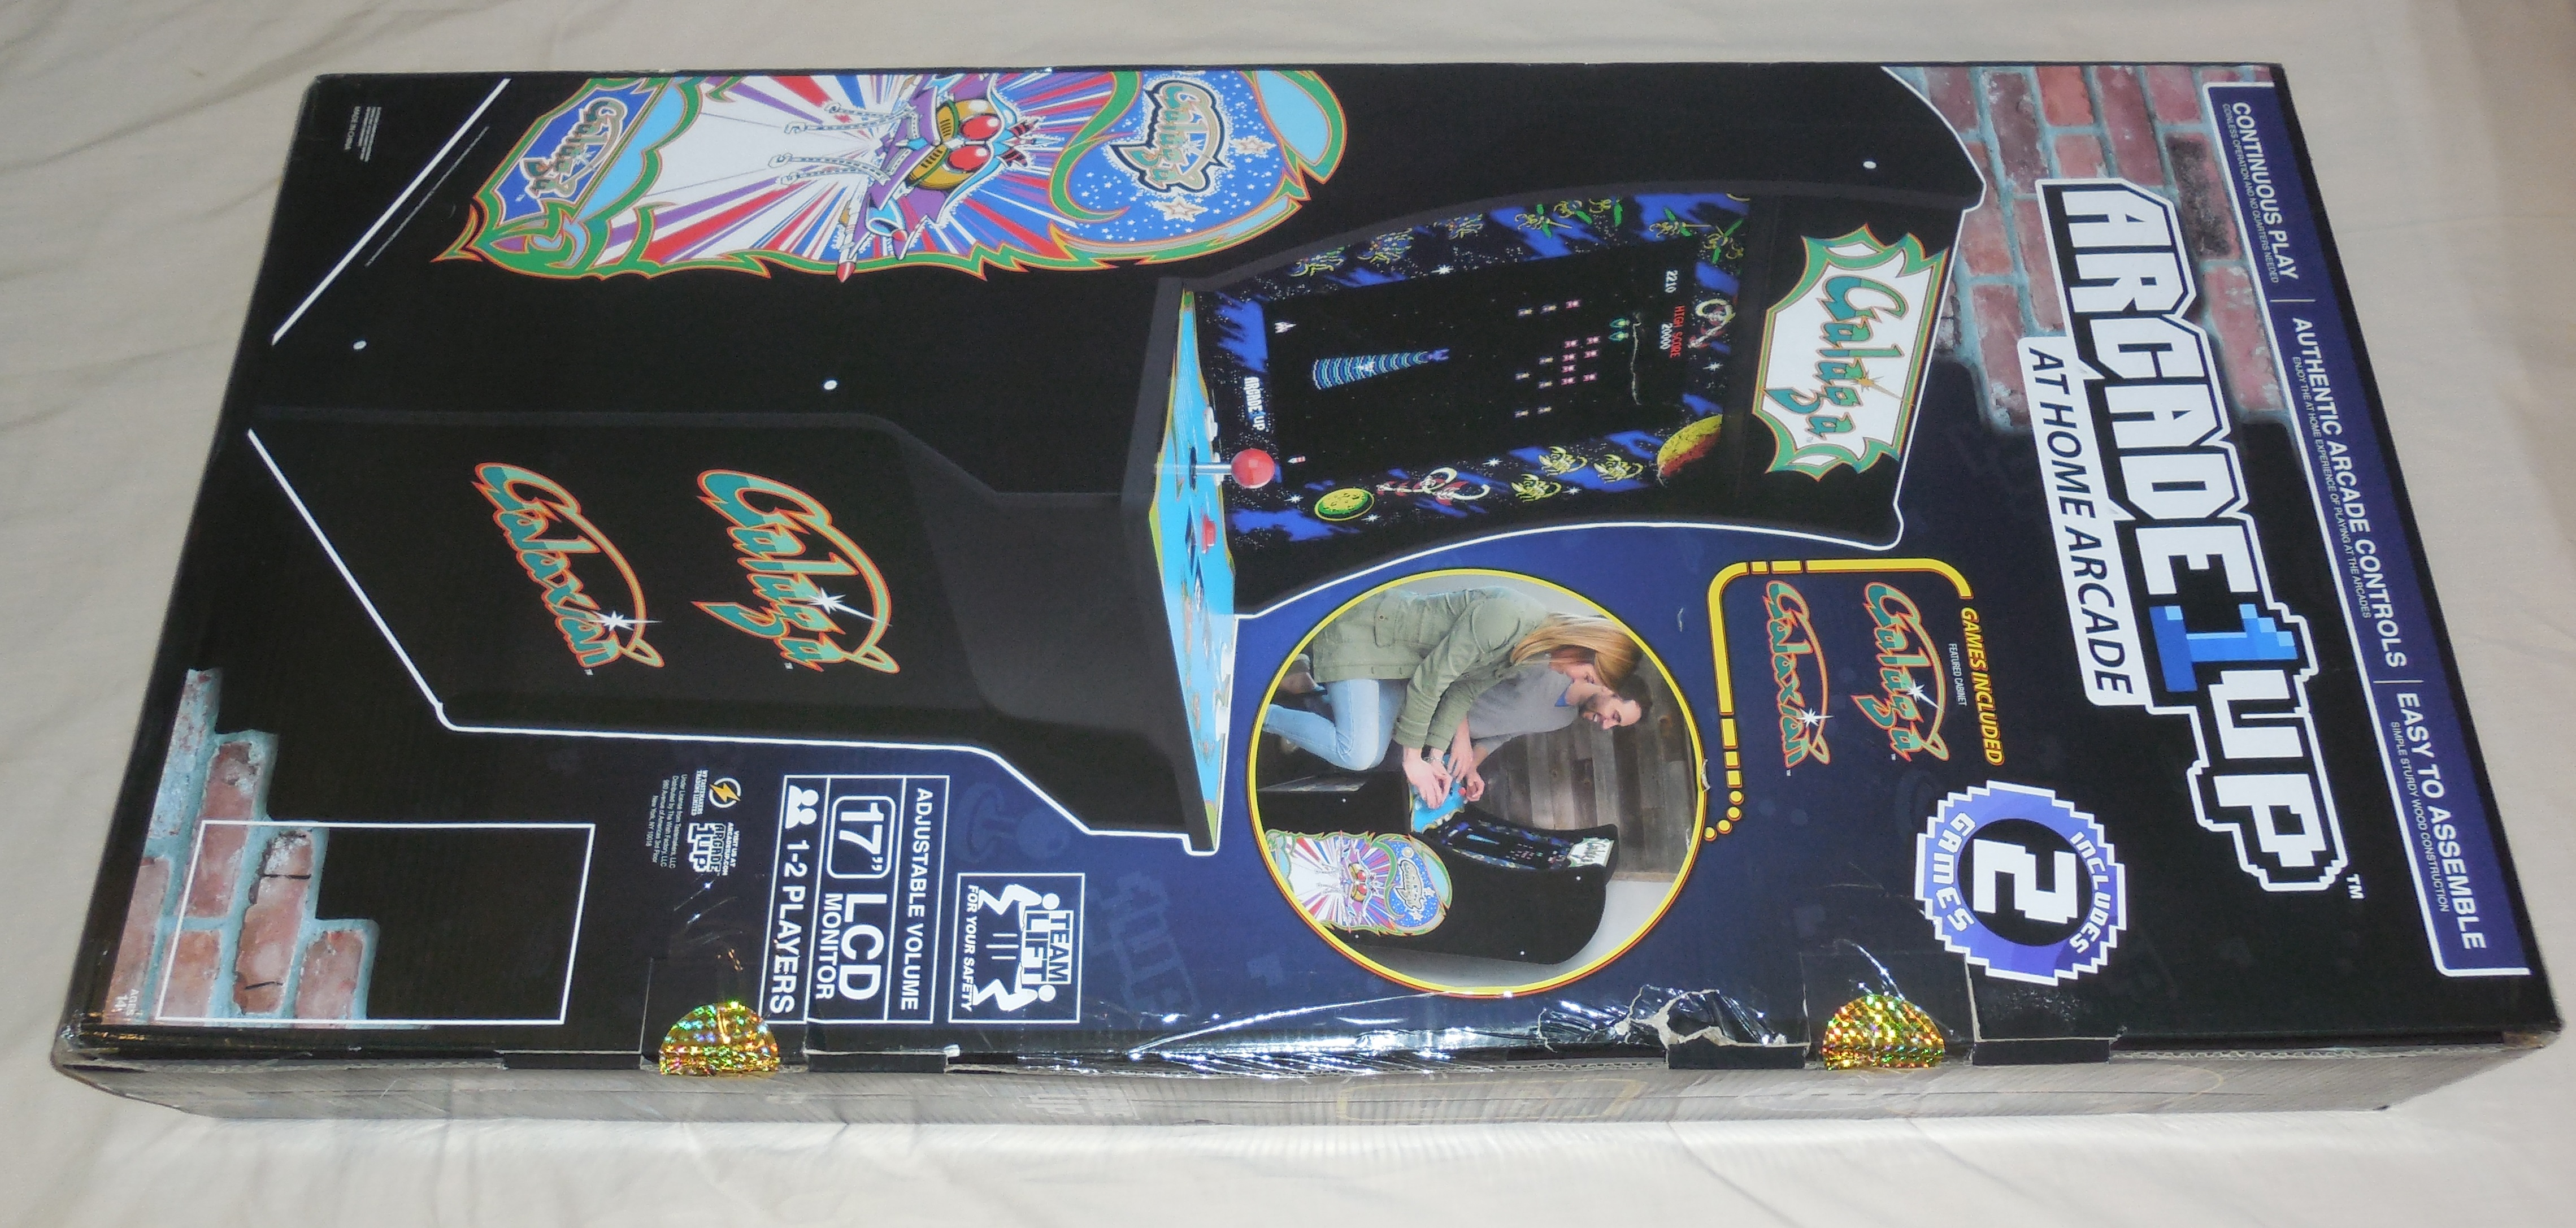 Arcade1Up Galaga Unboxing, Control Panel Modification, and